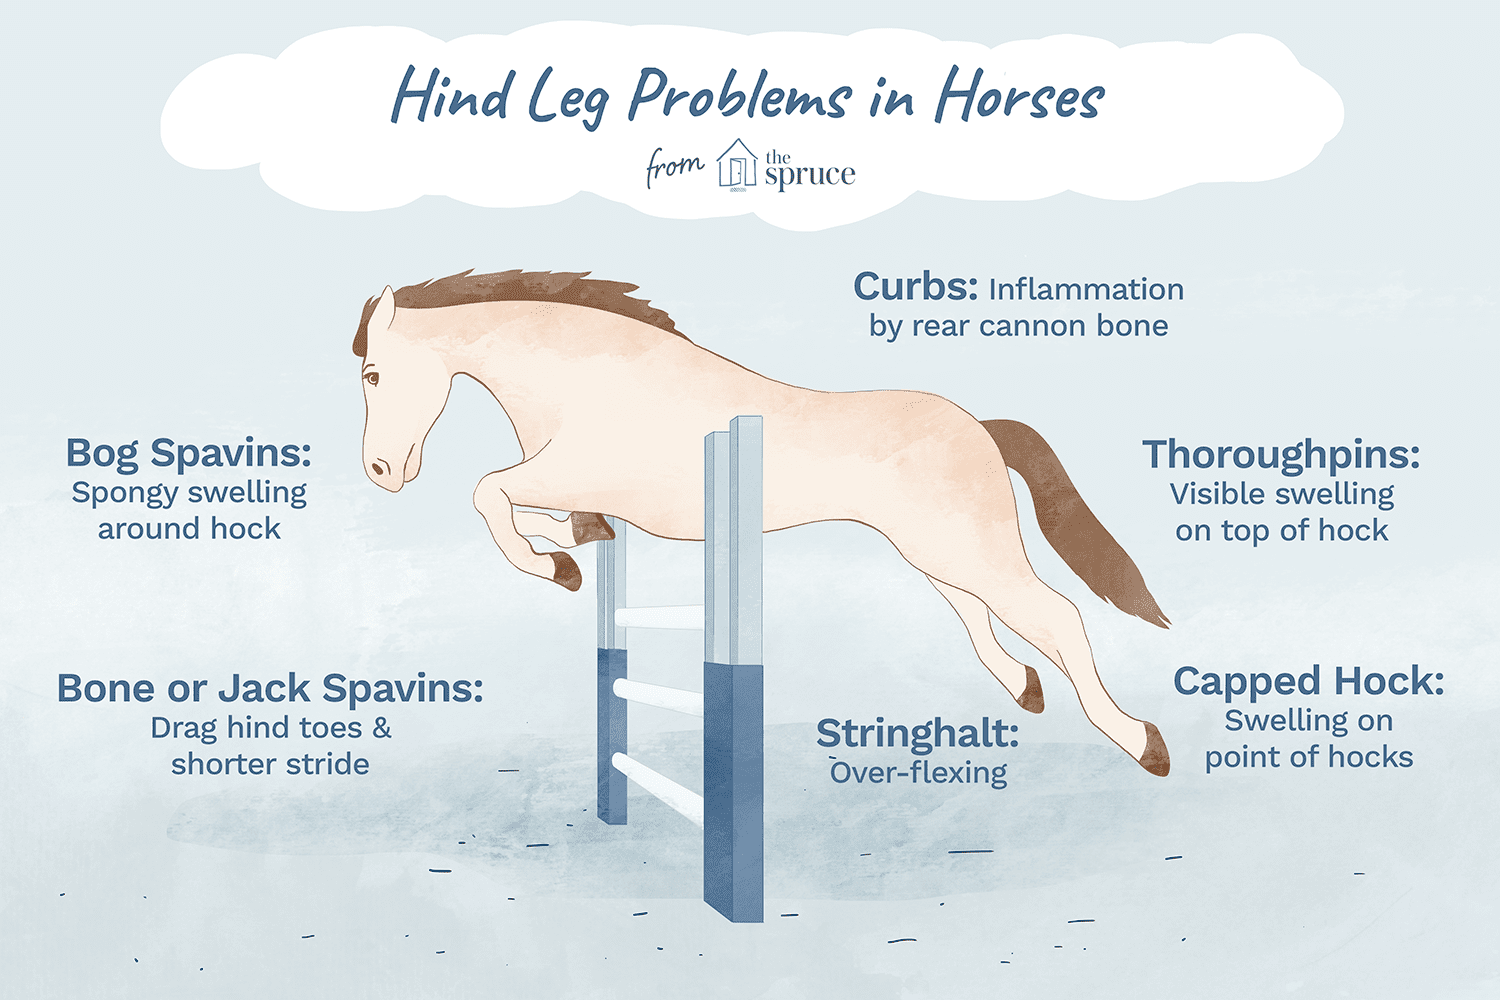 Hind Leg Problems in Horses - Causes and Treatment